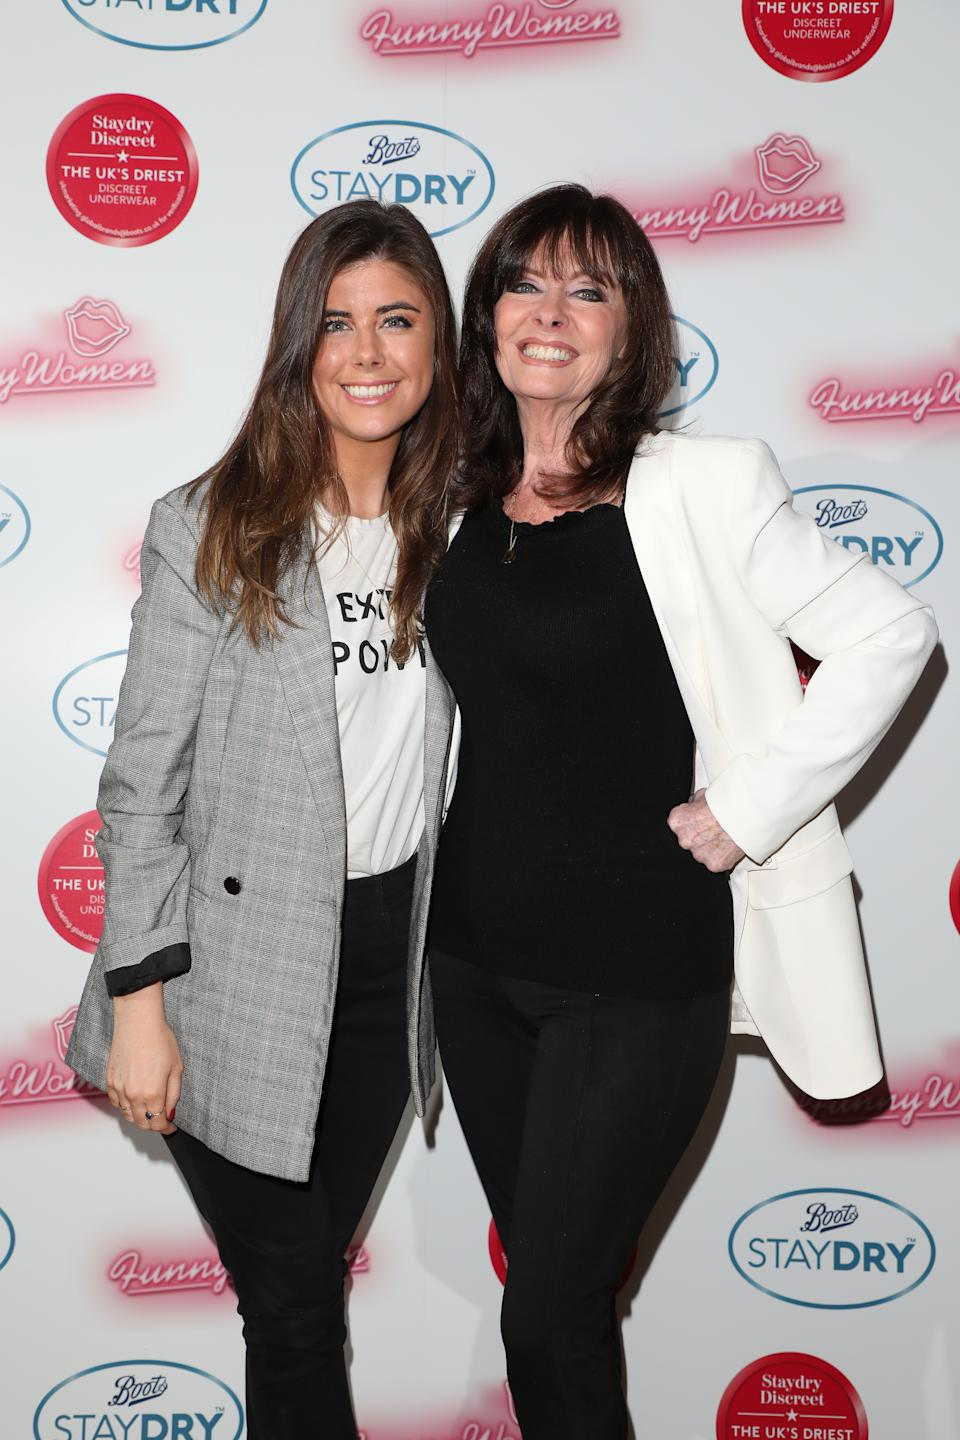 LONDON, ENGLAND - FEBRUARY 25: (L) Louise Michelle and (R) Vicki Michelle attend the Boots Staydry Women Take The P**s Comedy Night at Boulevard Theatre on February 25, 2020 in London, England. The event was held to challenge the taboo associated with female incontinence and encourage women to talk more openly about the condition.  (Photo by Lia Toby/Getty Images for Boots Staydry )